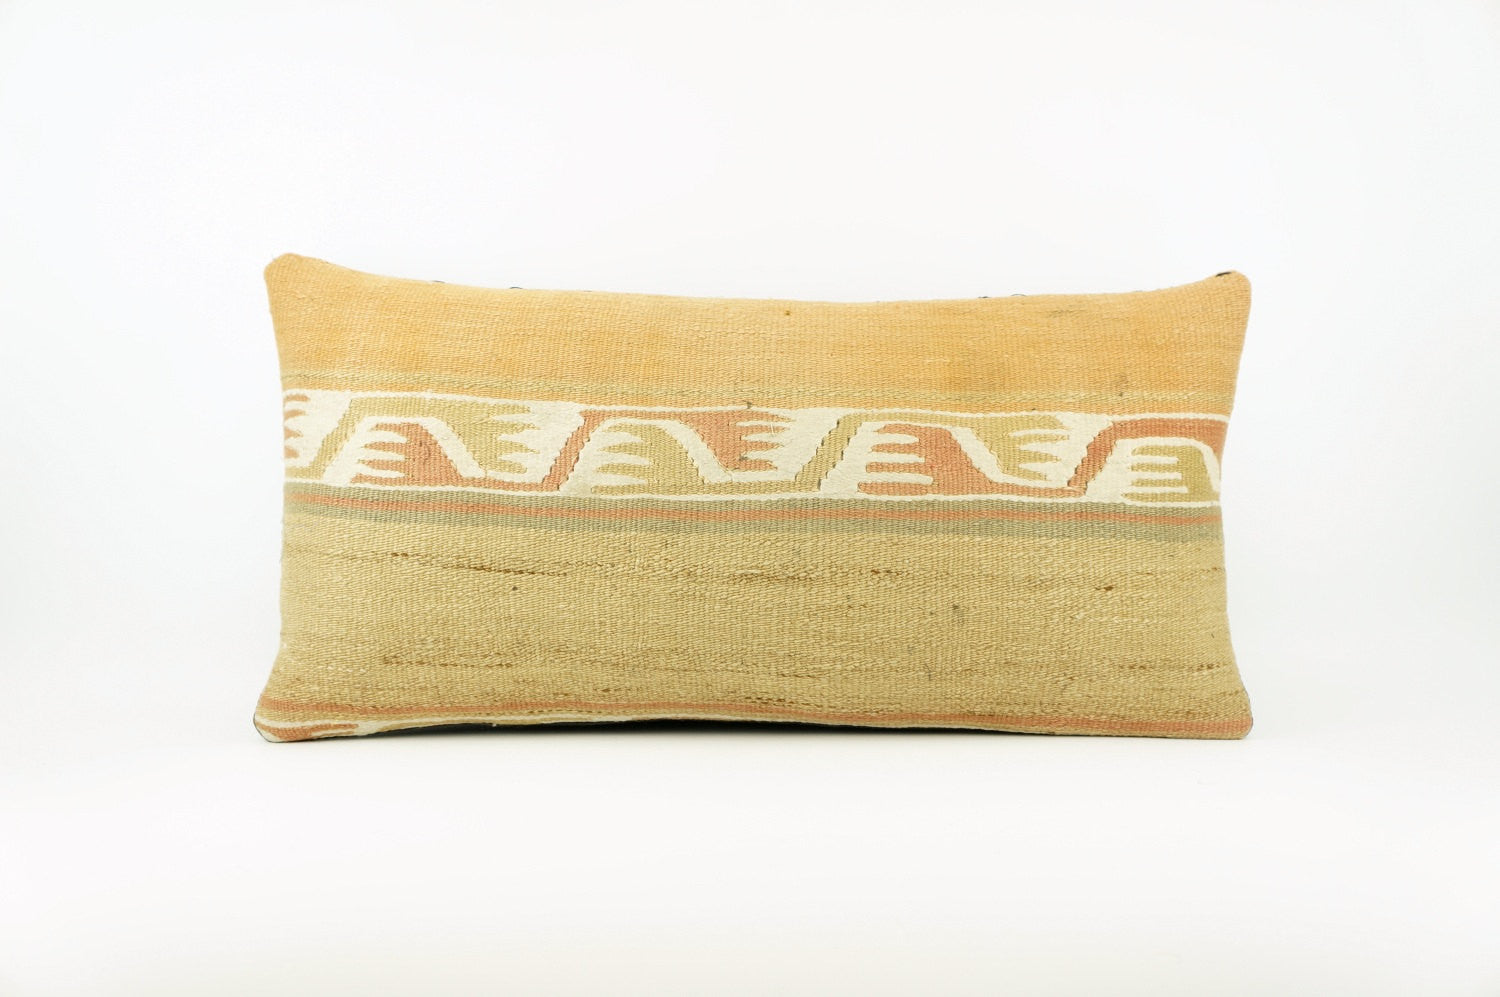 12x24 Geometric kilim pillow sham, Tribal cushion cover, Beige ,Handwoven pillowcase , mid century decor 1634 - kilimpillowstore  - 1